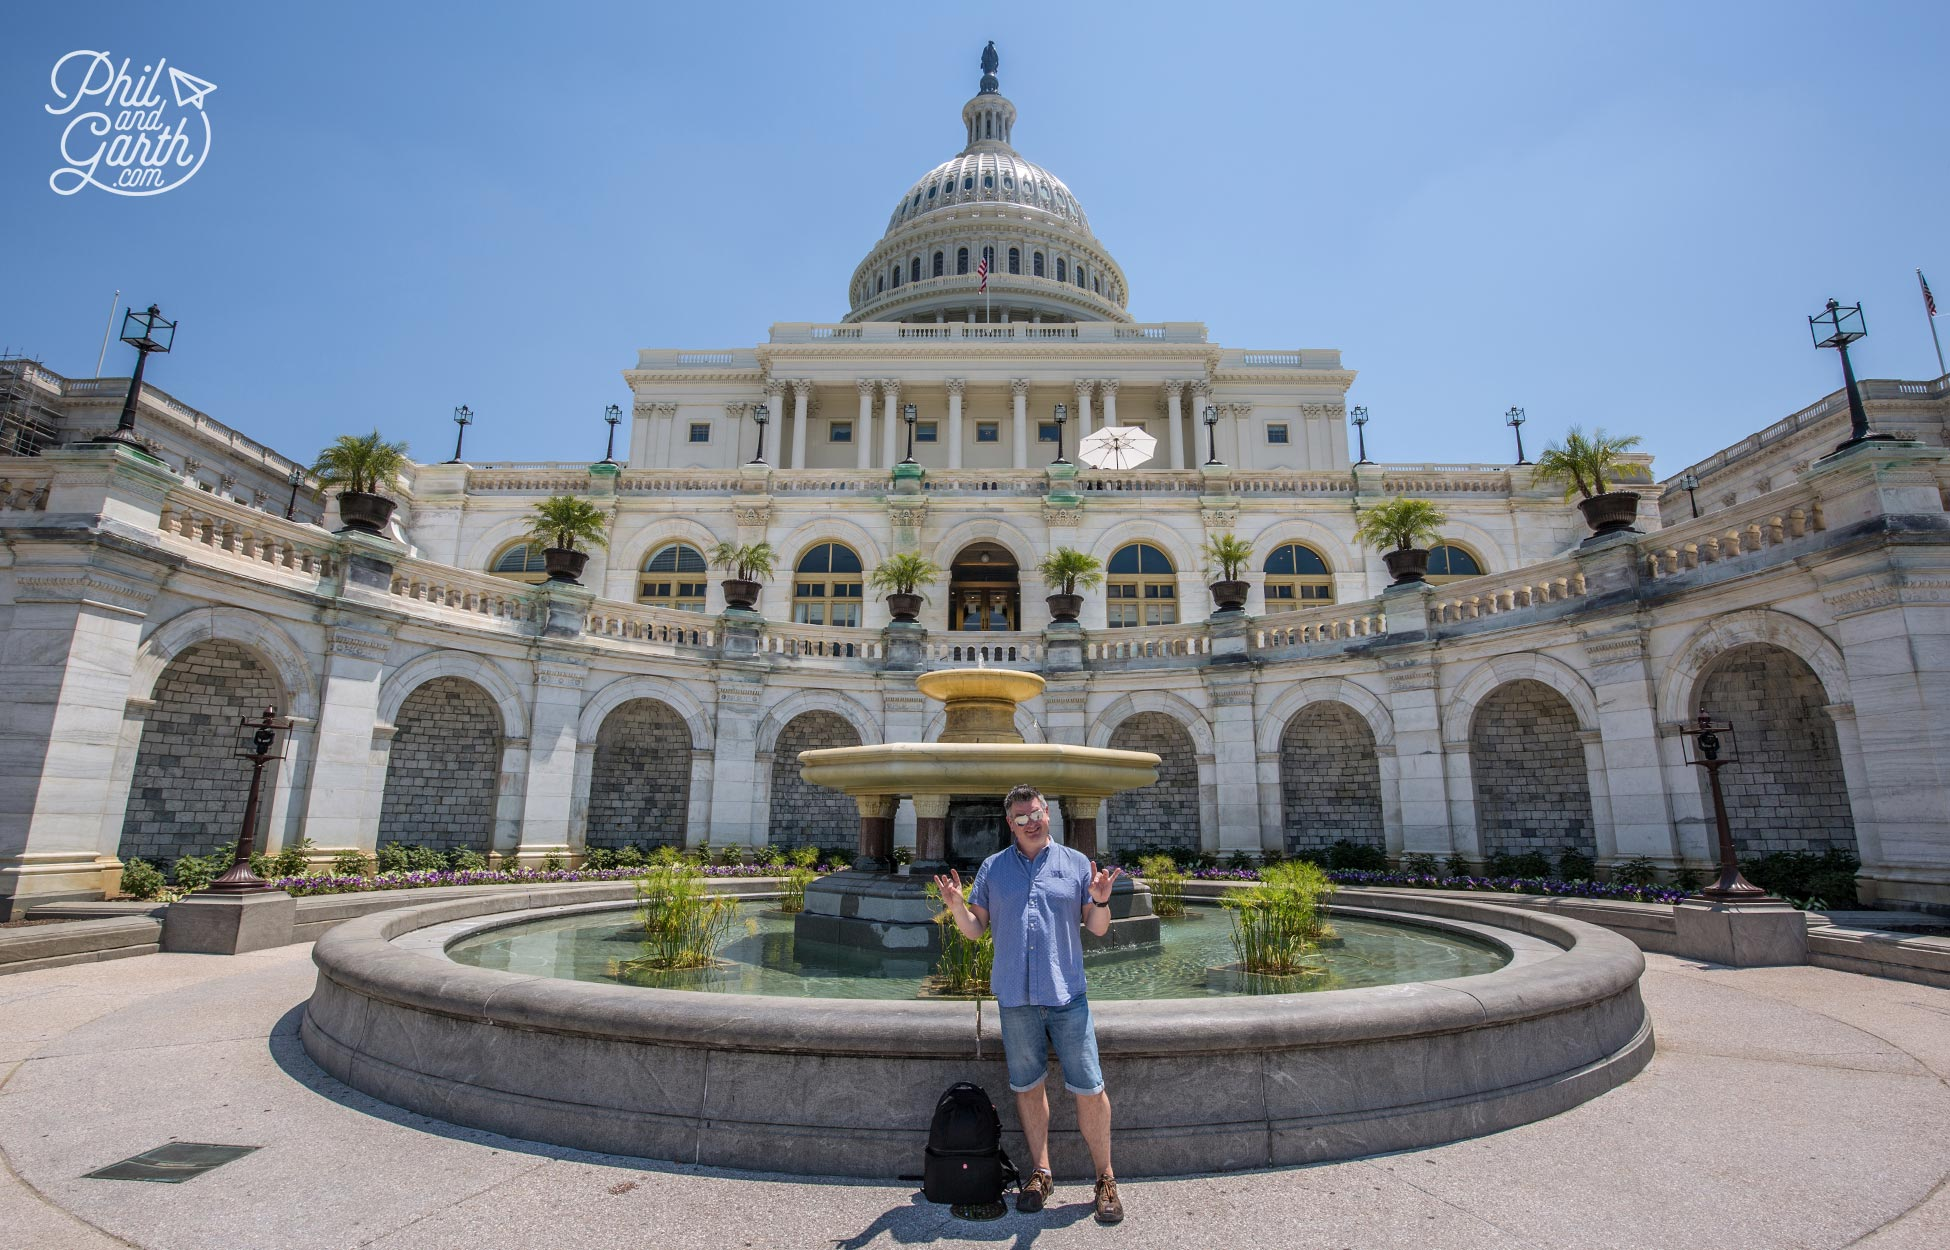 This is where presidential inaugurations take place. Phil doing his best Donald Trump impression.